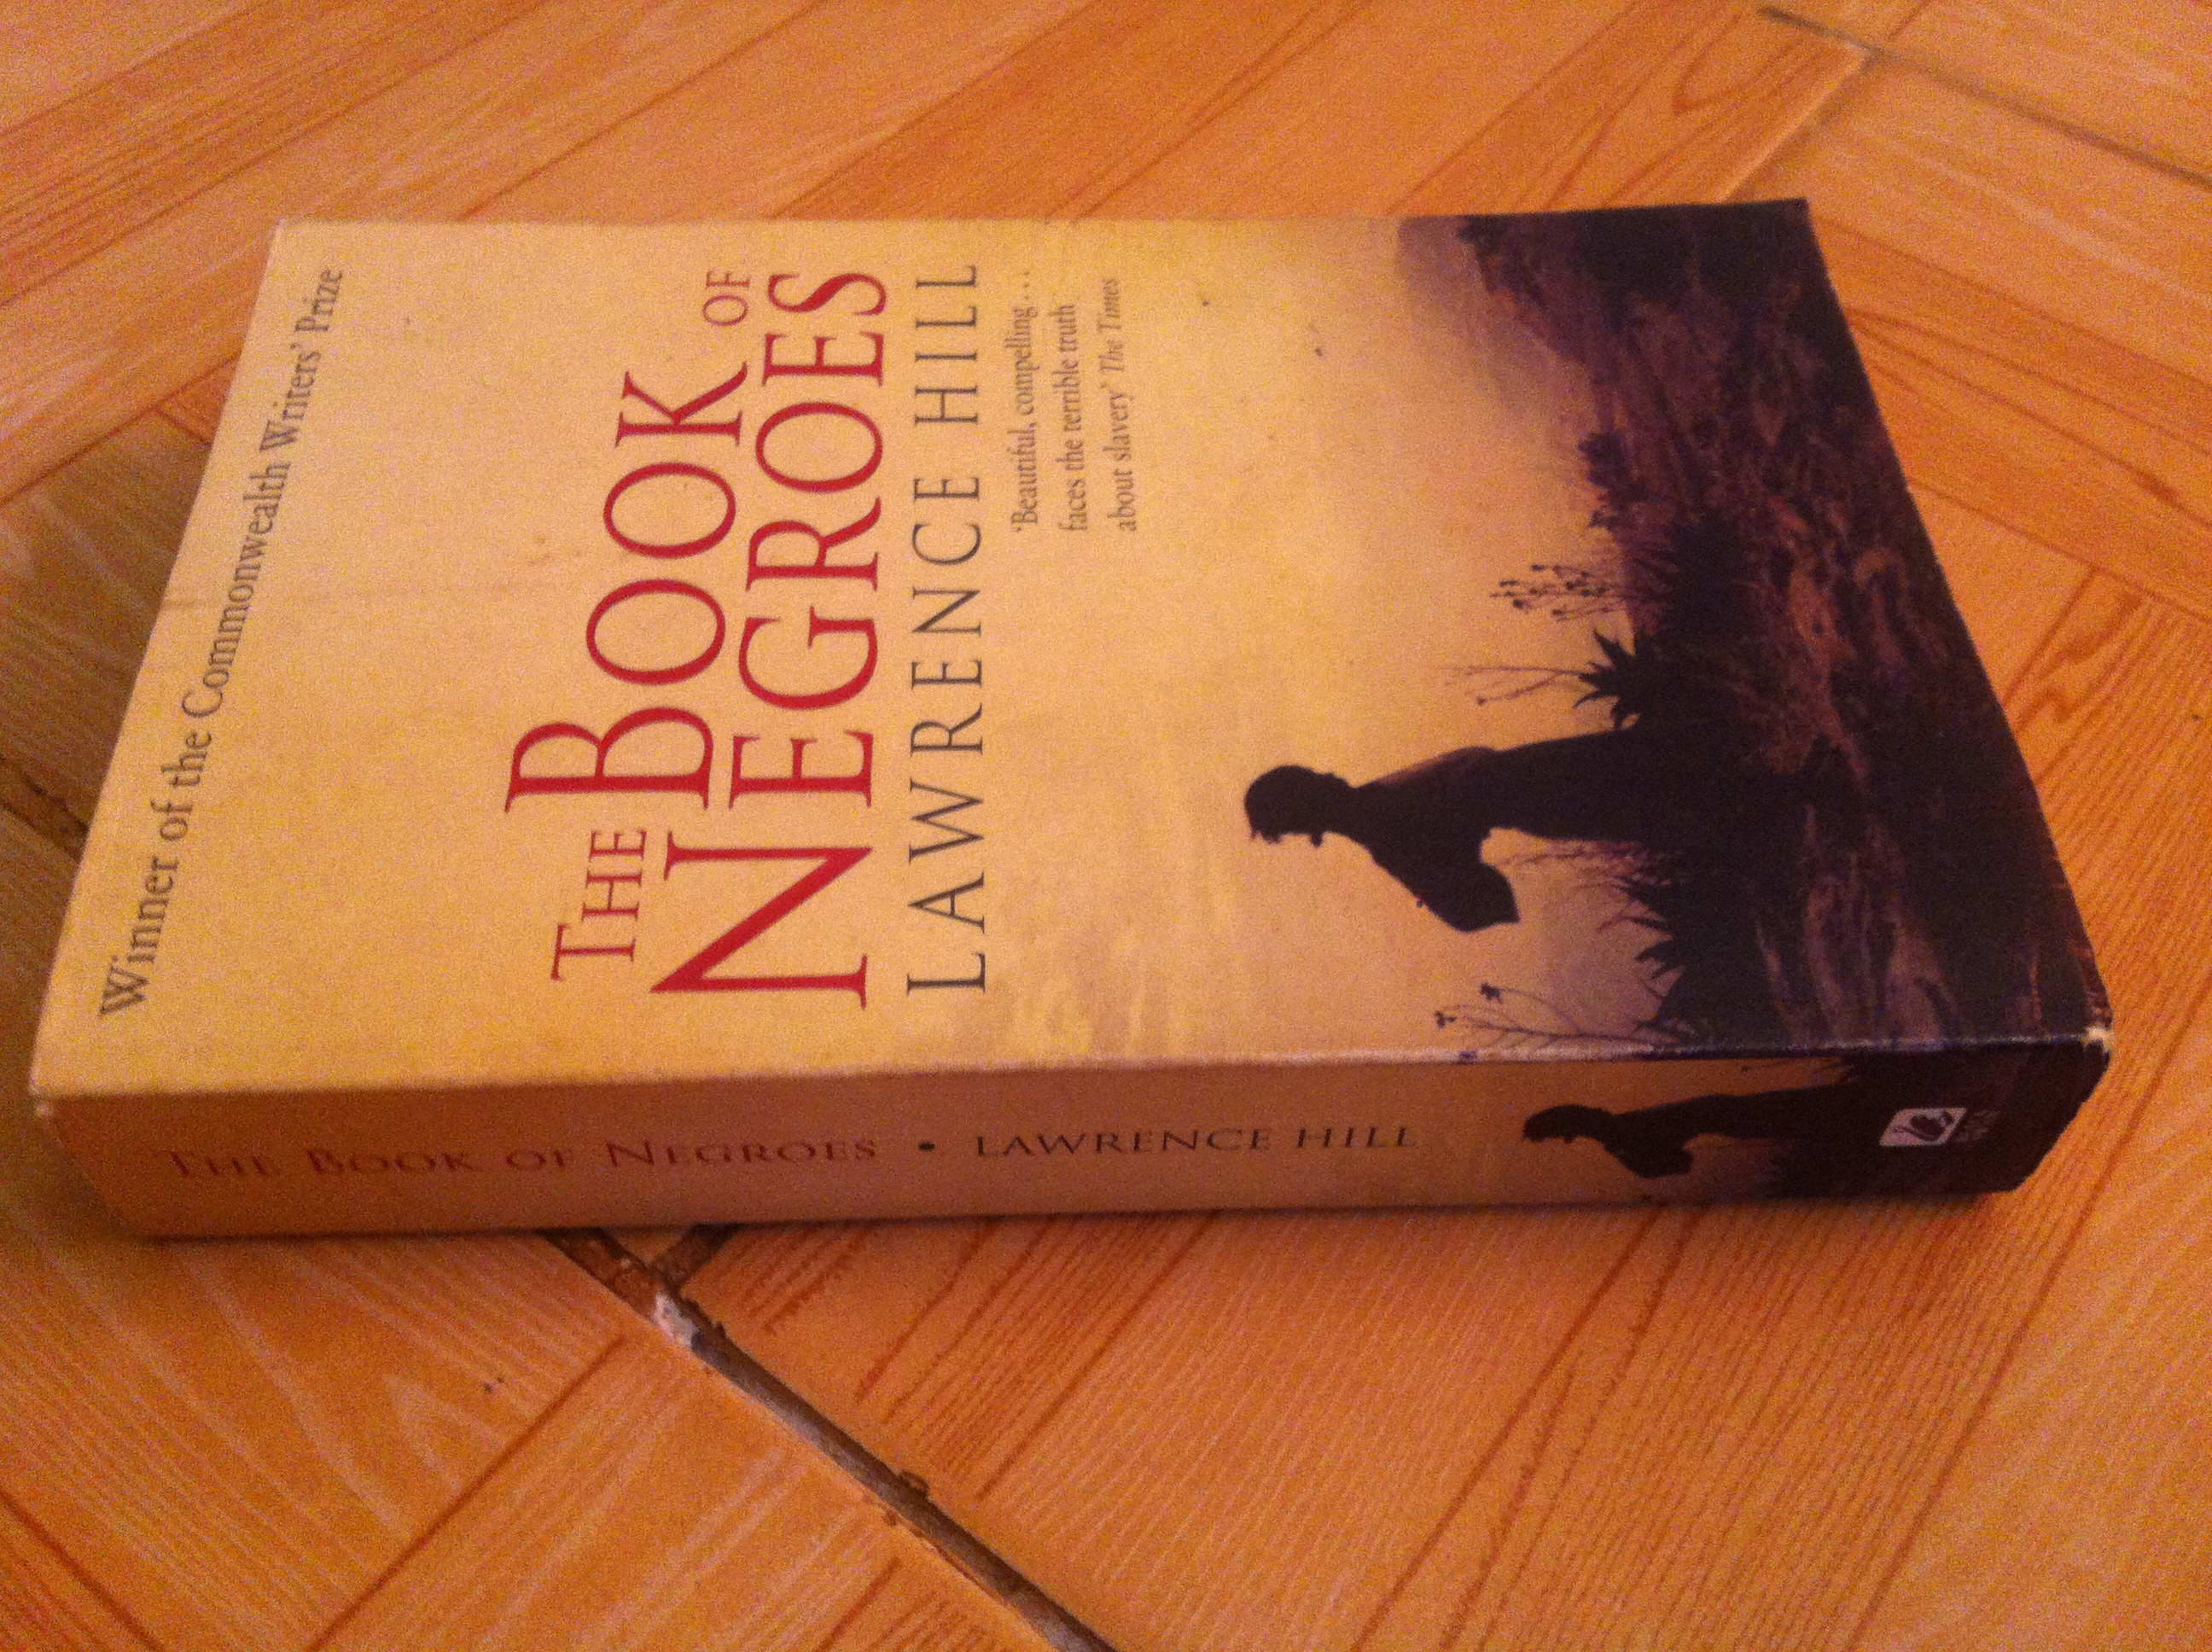 The Book of Negroes by Lawrence Hills - front cover